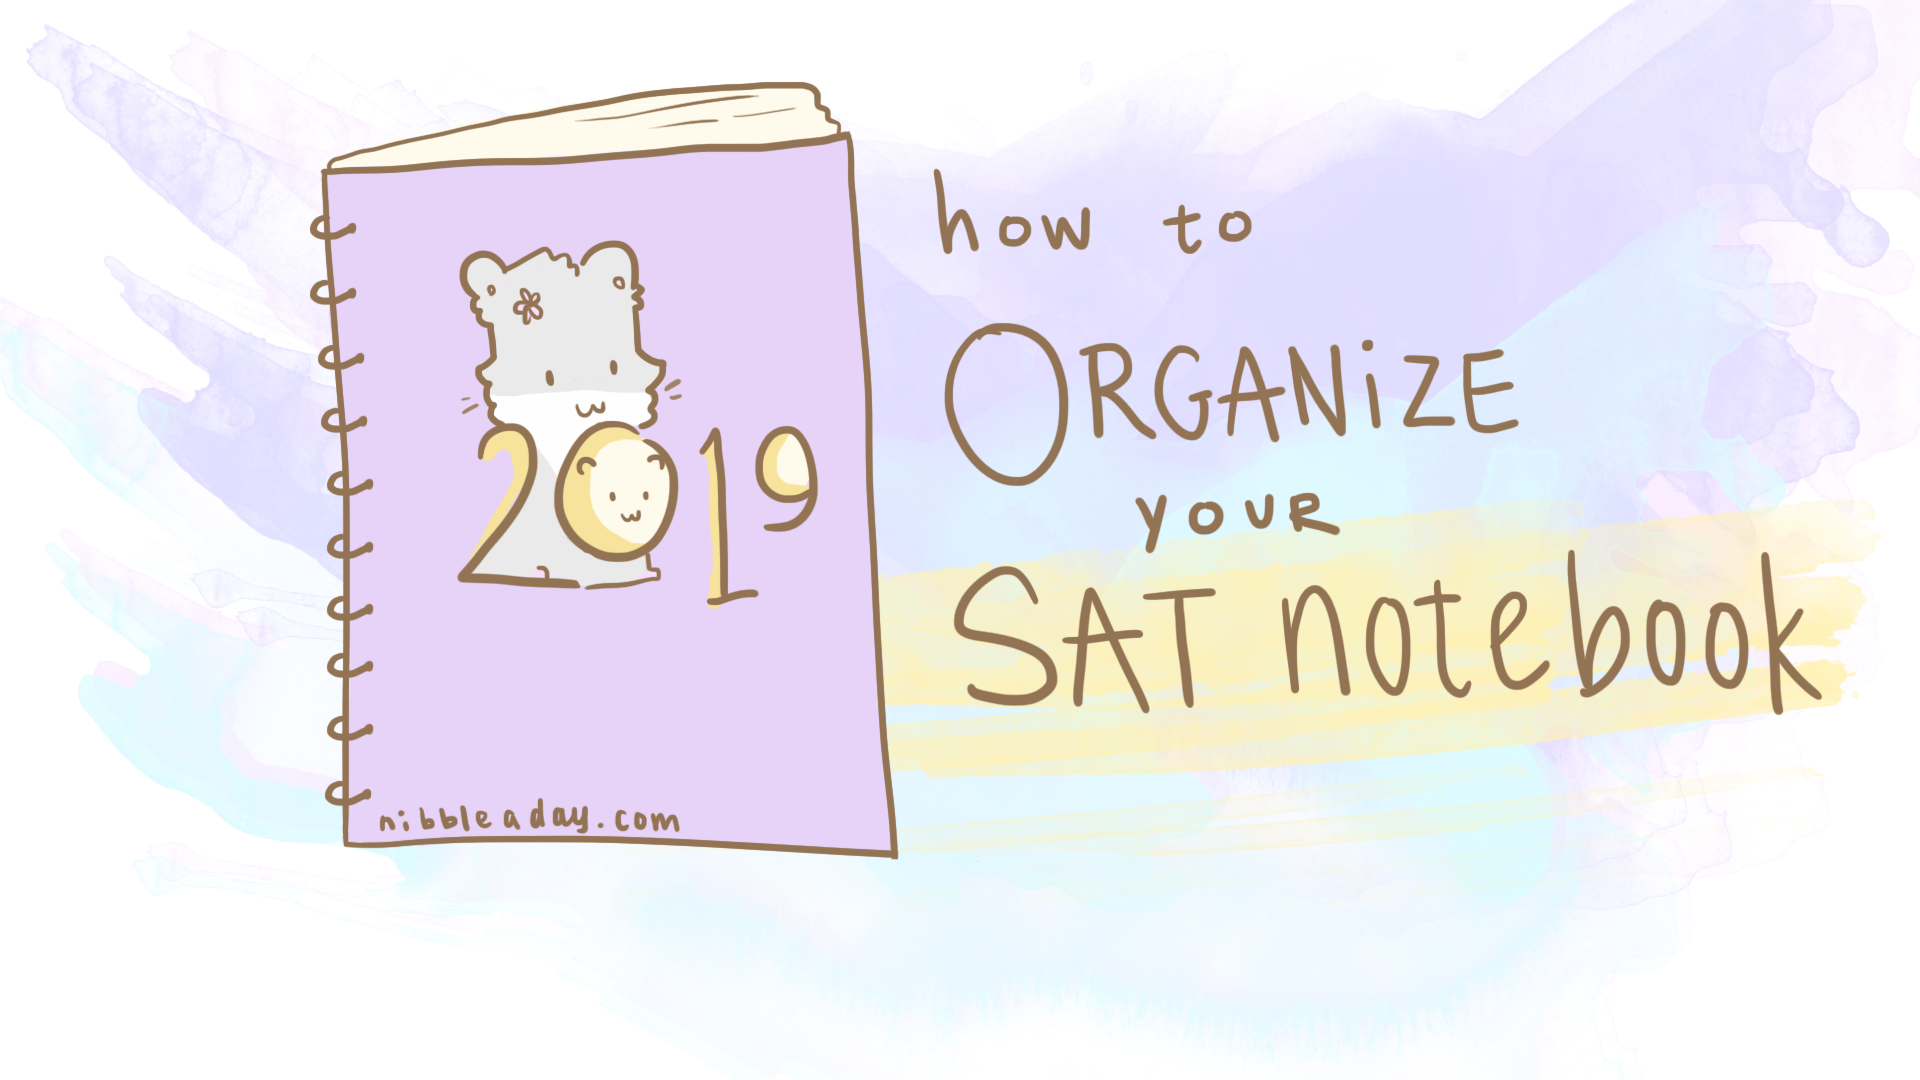 How to Organize Your SAT Notebook